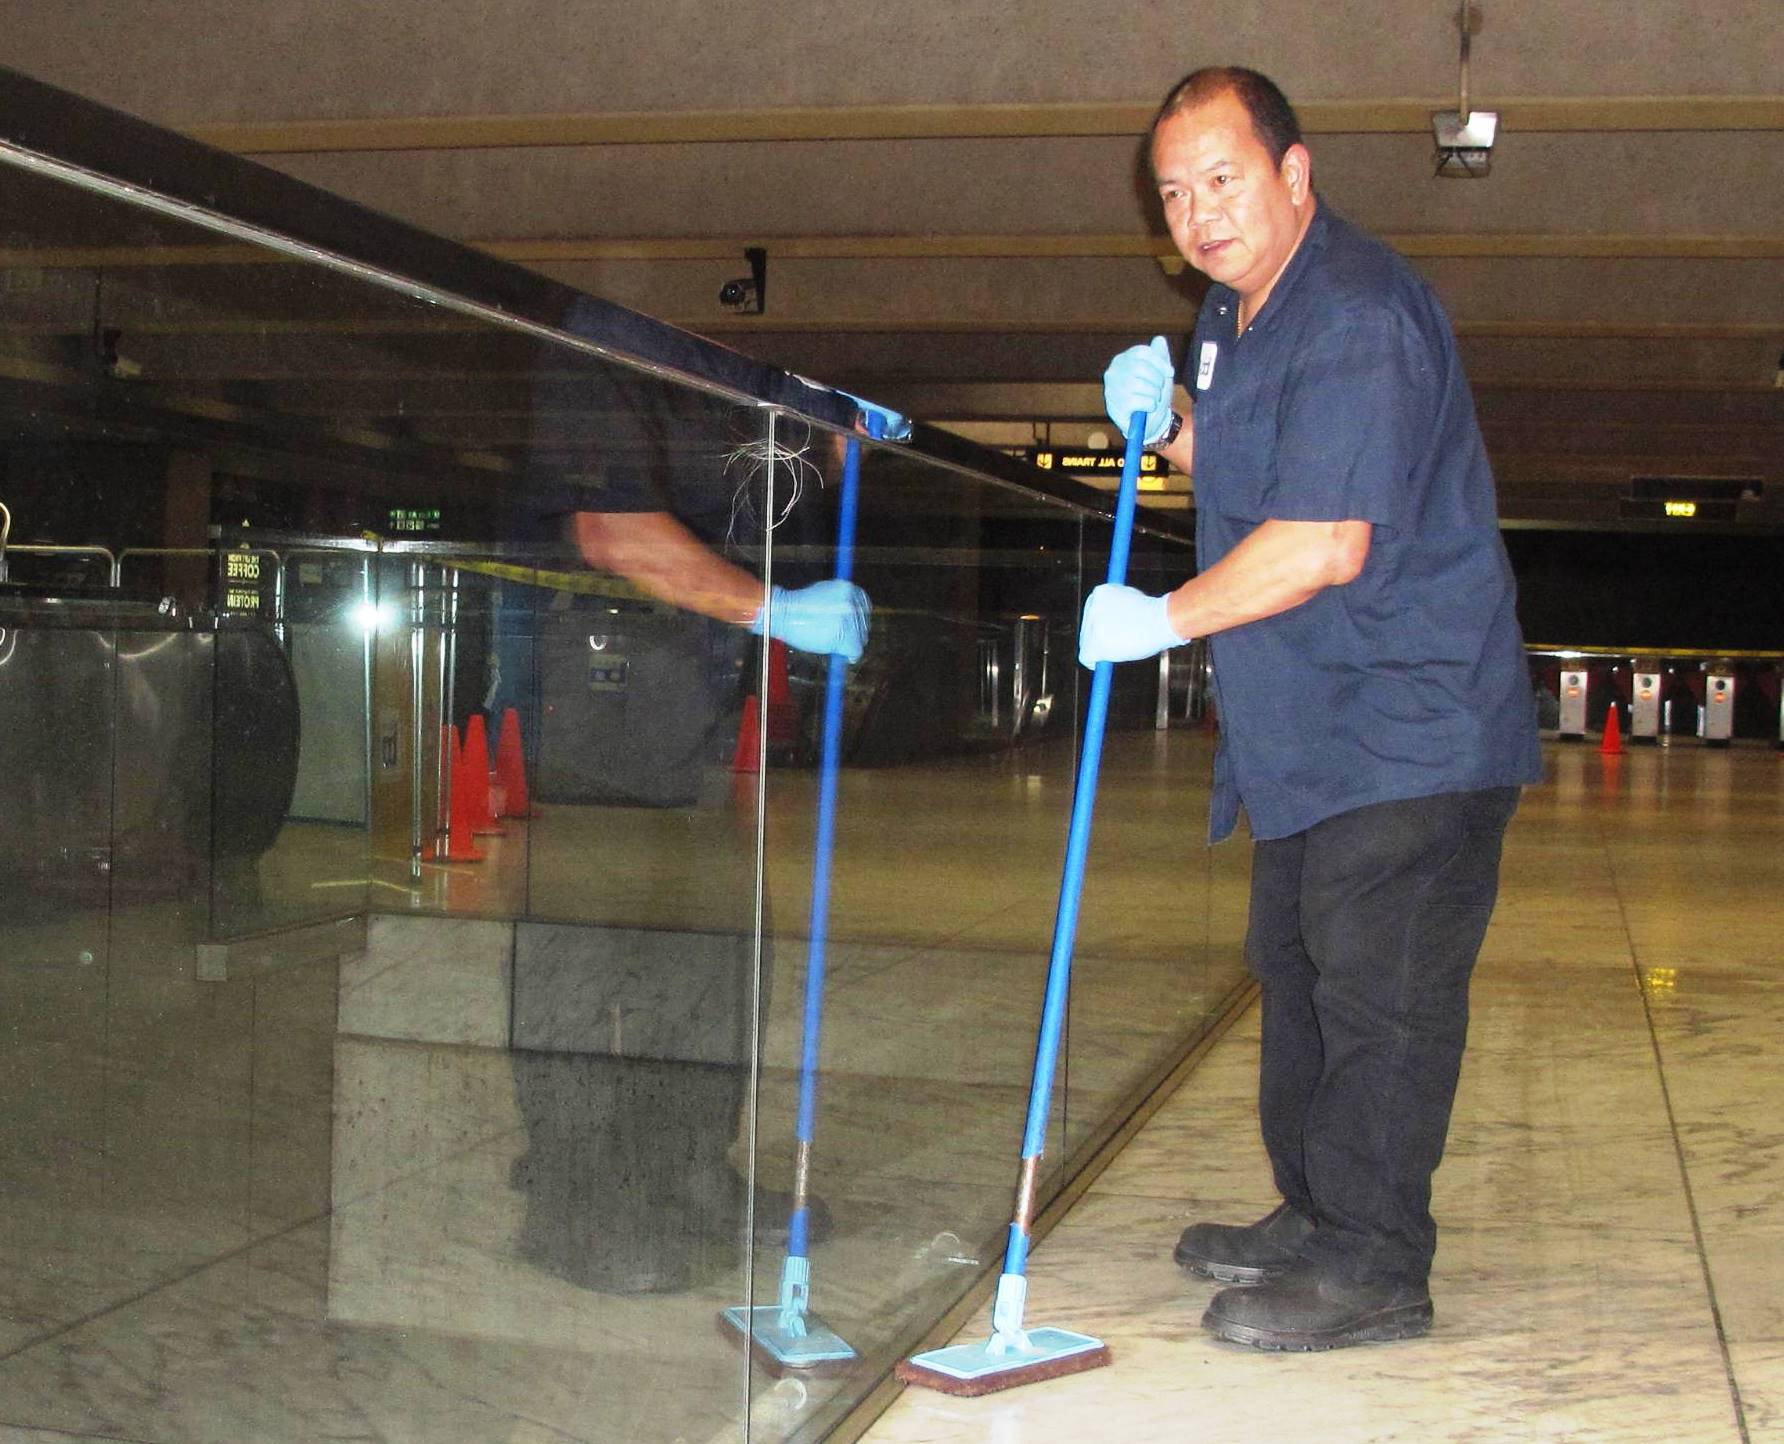 cleaning floor at Embarcadero